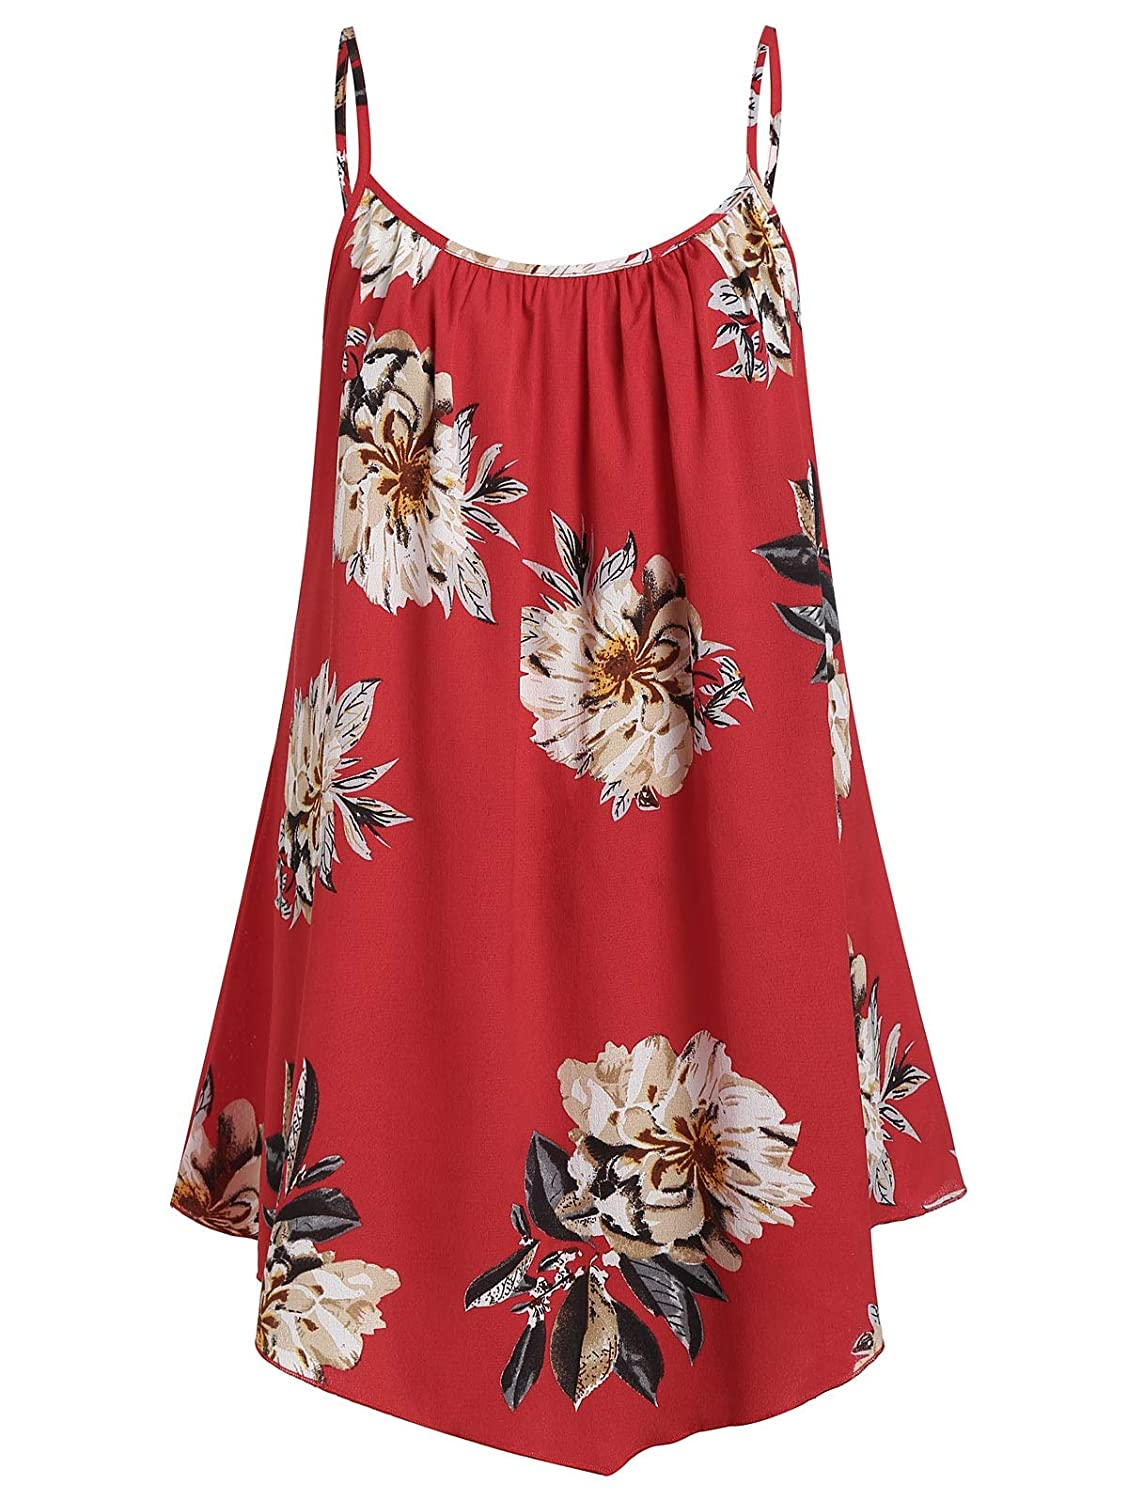 CNSTORE Womens Summer Plus Size Hooded Tied Long Vest with Floral Cami Top Twinset